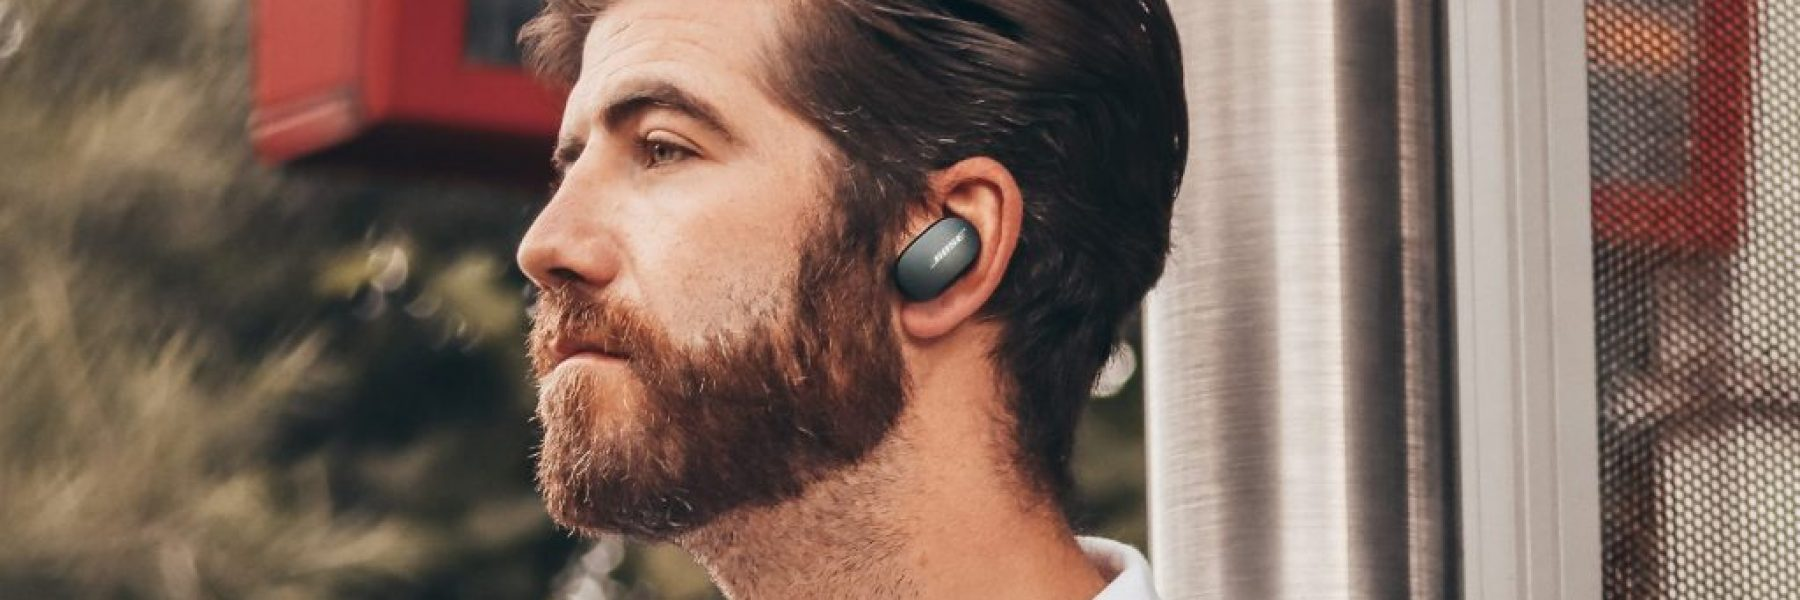 Bose QuietComfort Earbuds – The Ideal Noise Cancellation for Maximum Focus